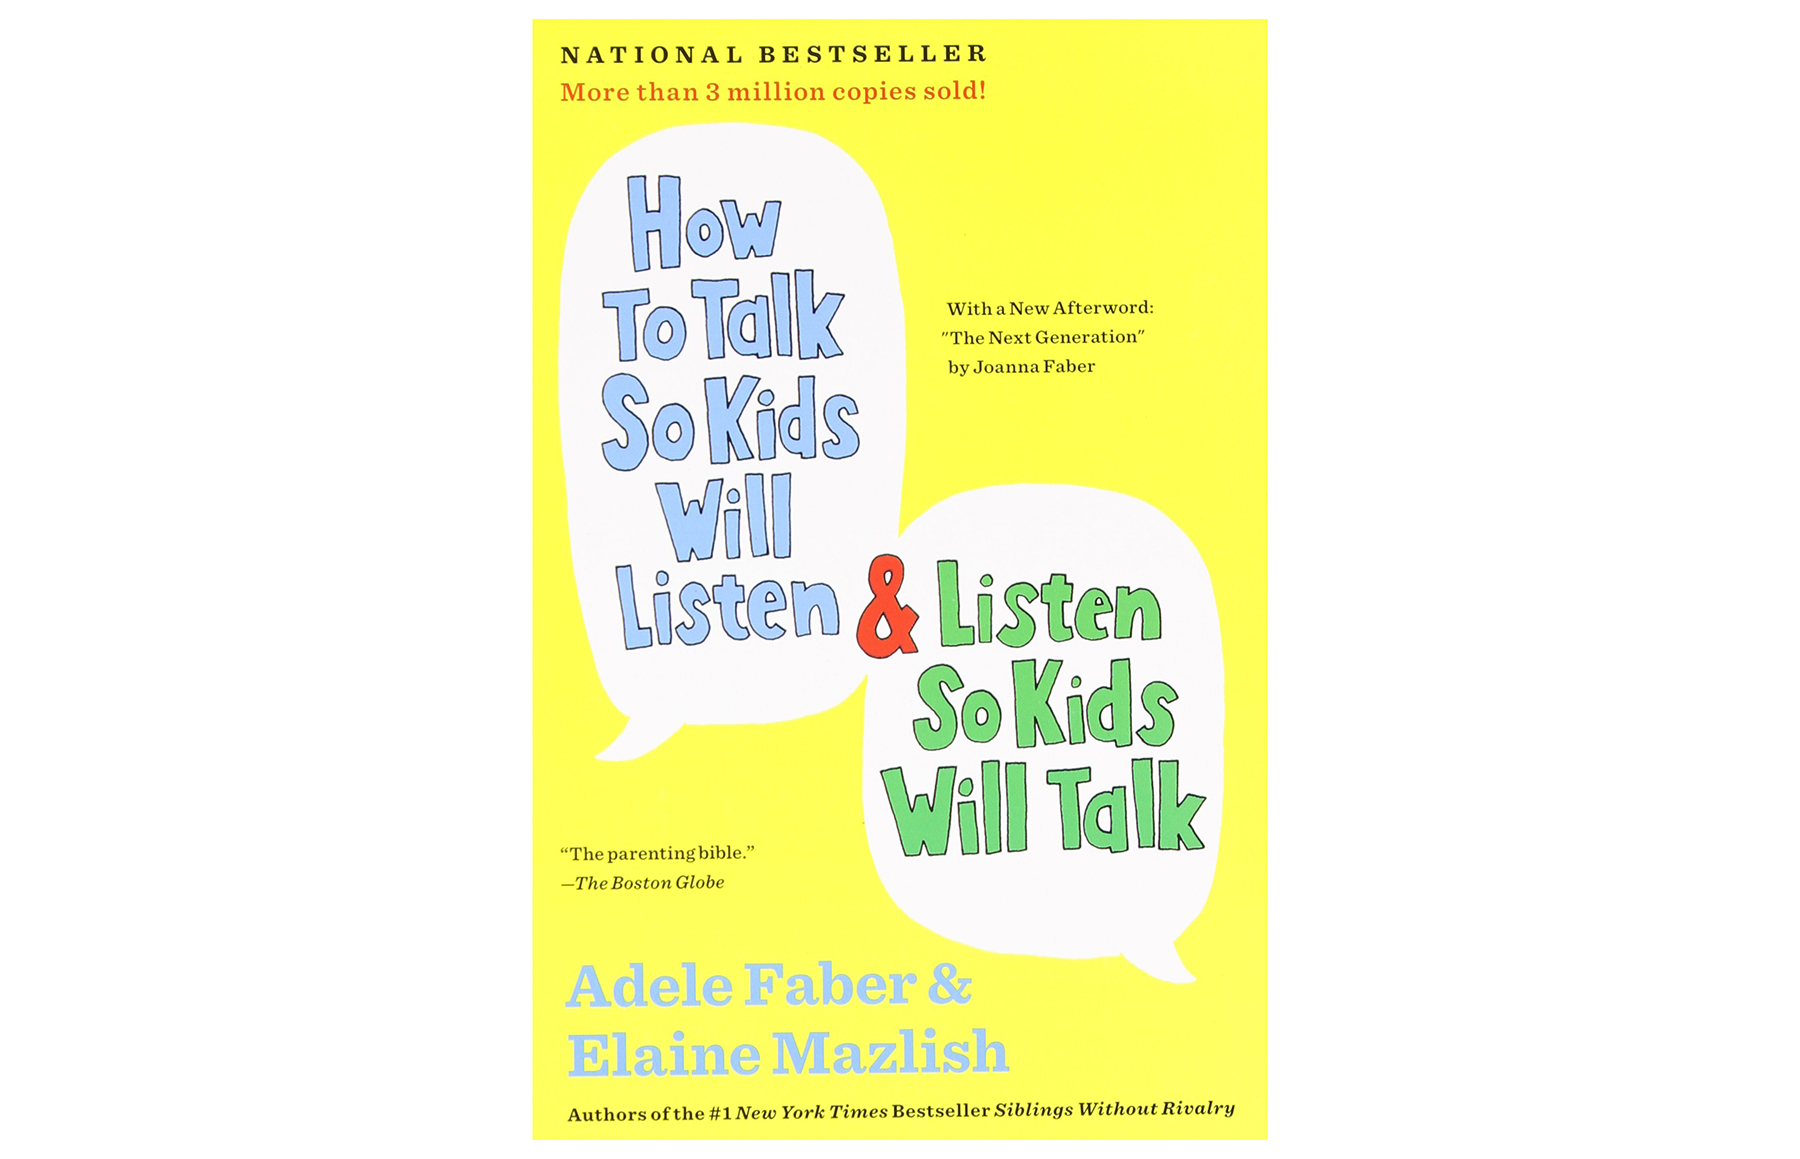 ‪How to Talk So Kids Will Listen and Listen So Kids Will Talk, by Adele Faber and Elaine Mazlish